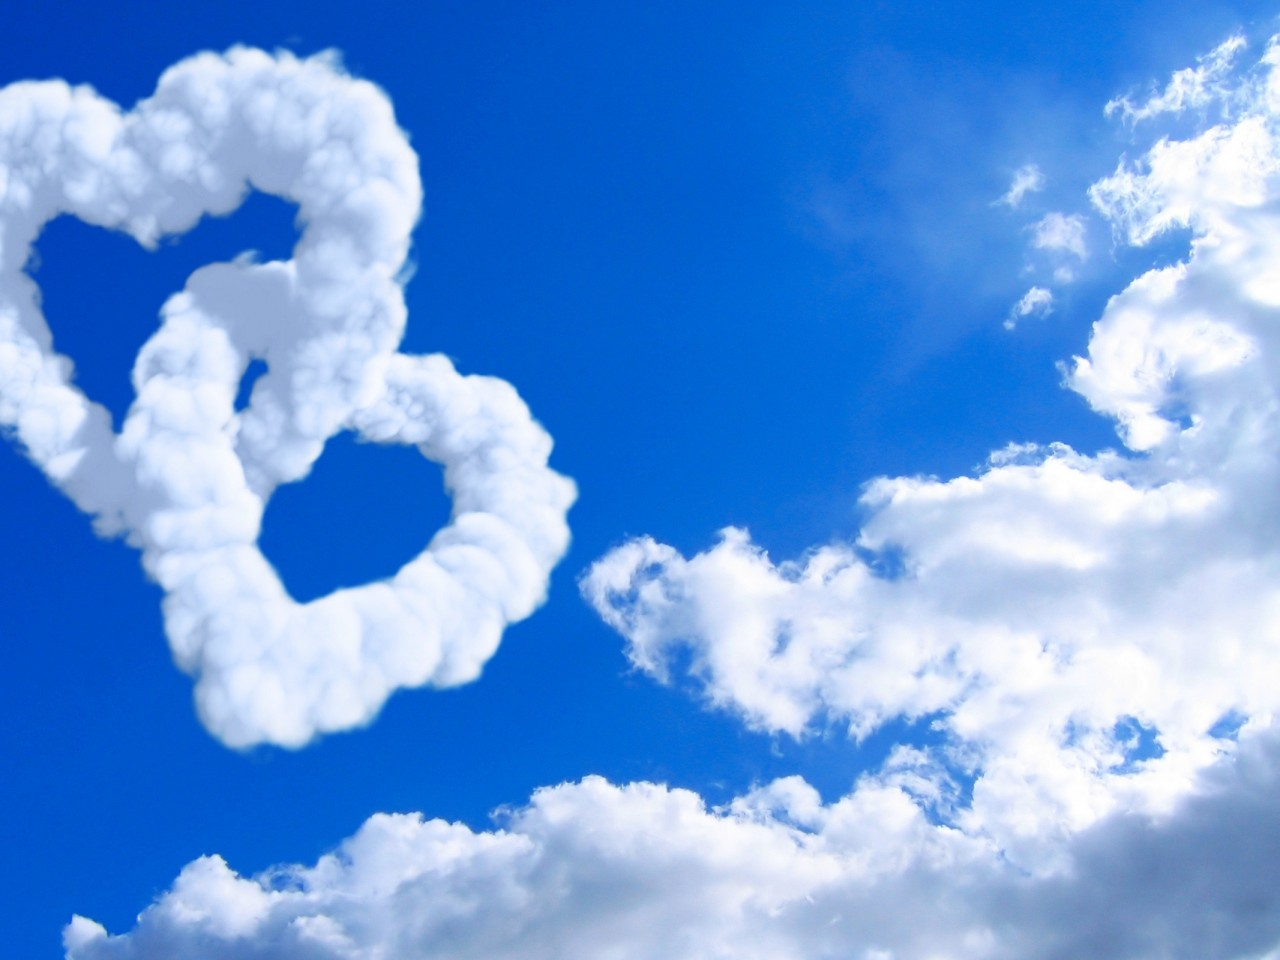 High Resolution Wallpaper Download Two Hearts In The Sky